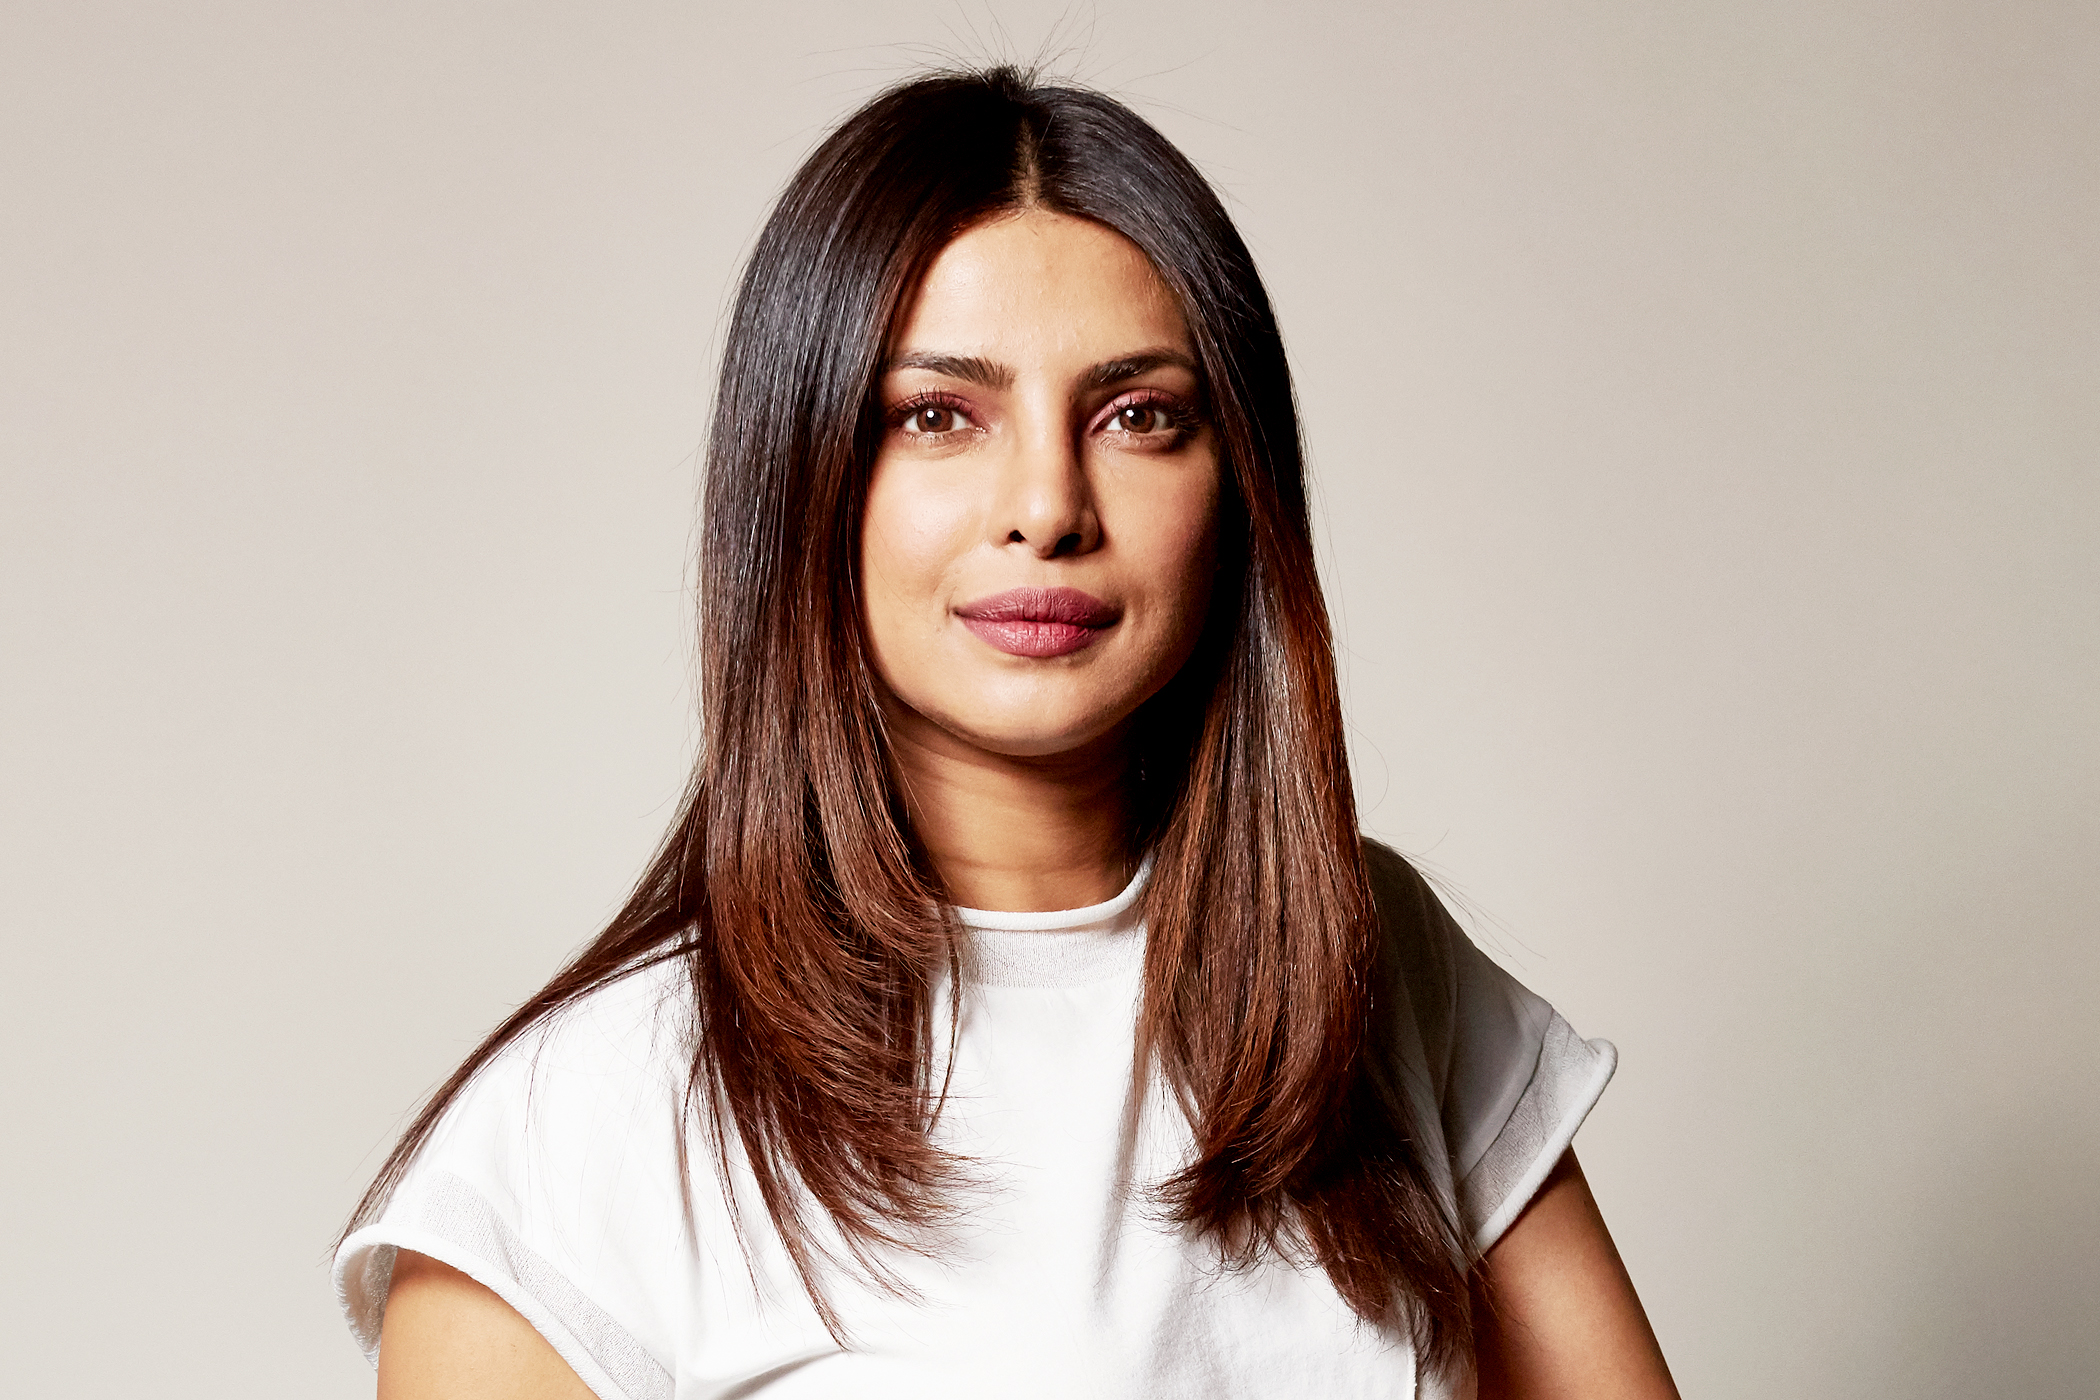 Priyanka Chopra - Award winning Indian actress, singer, producer, human rights activist, and the first South Asian to headline an American network drama series.